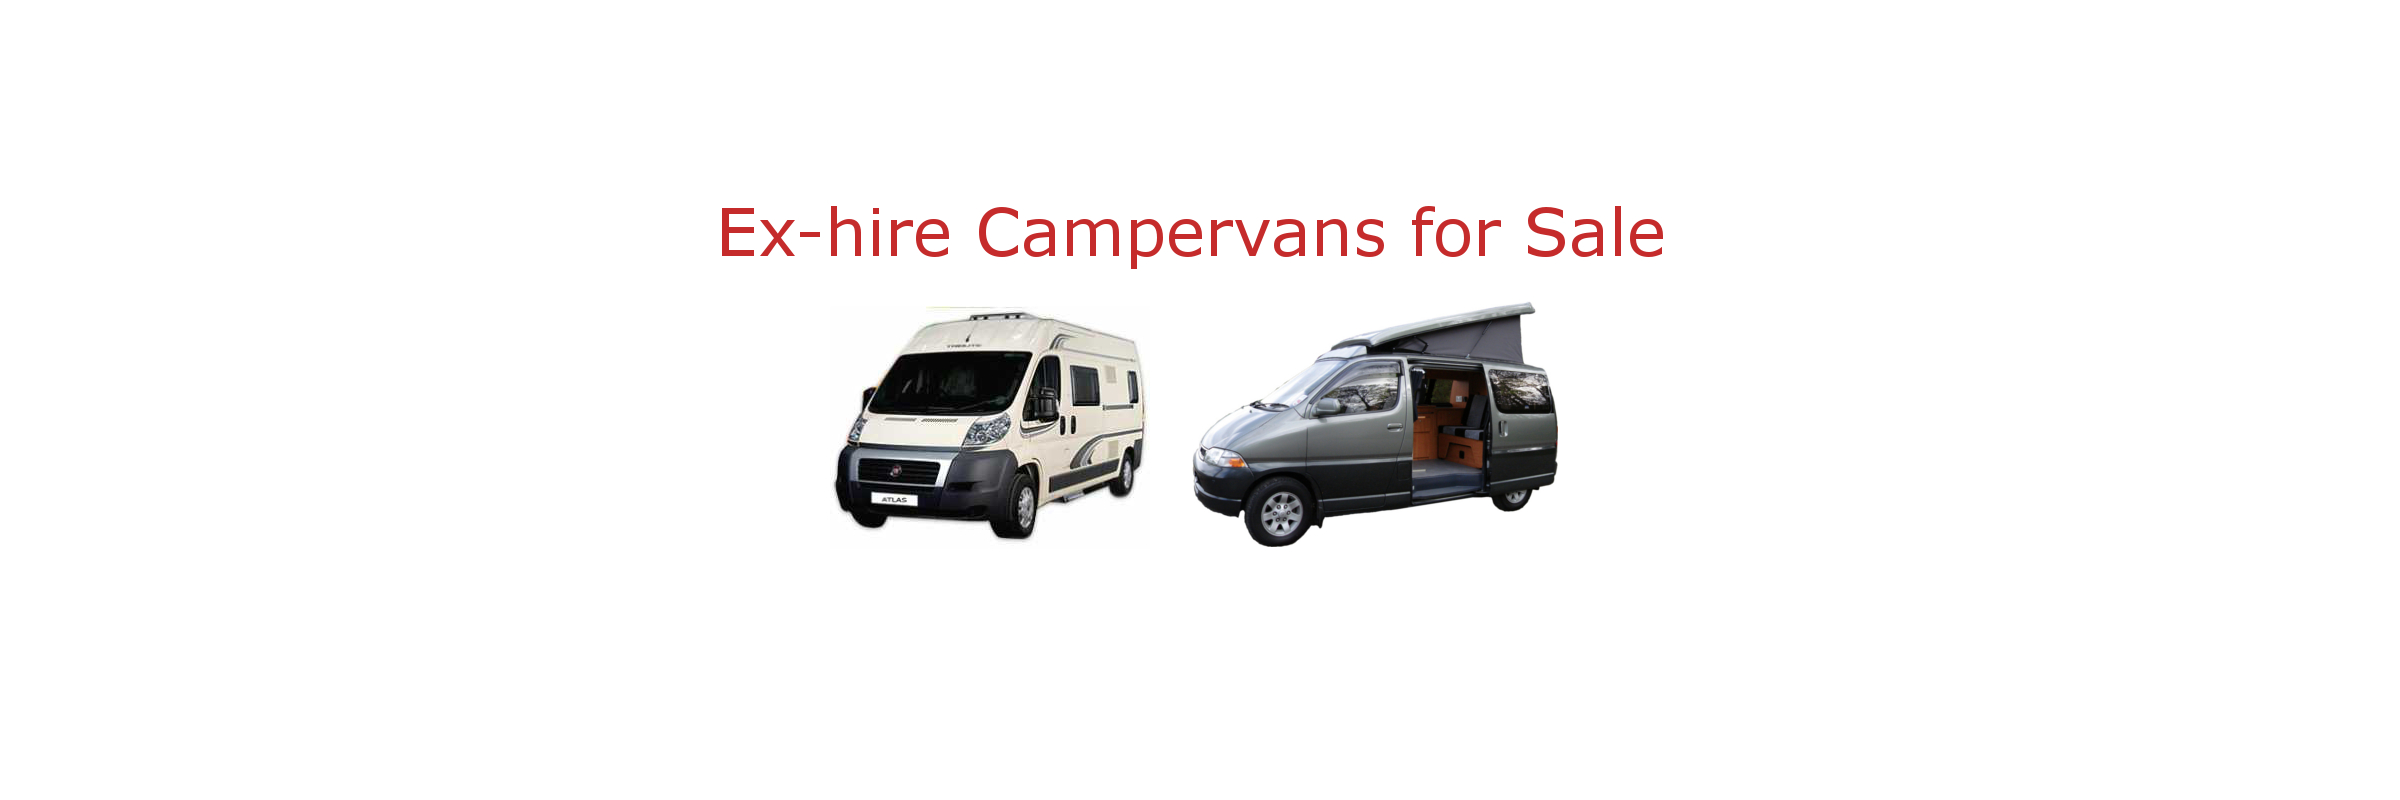 campervanforsale-banner